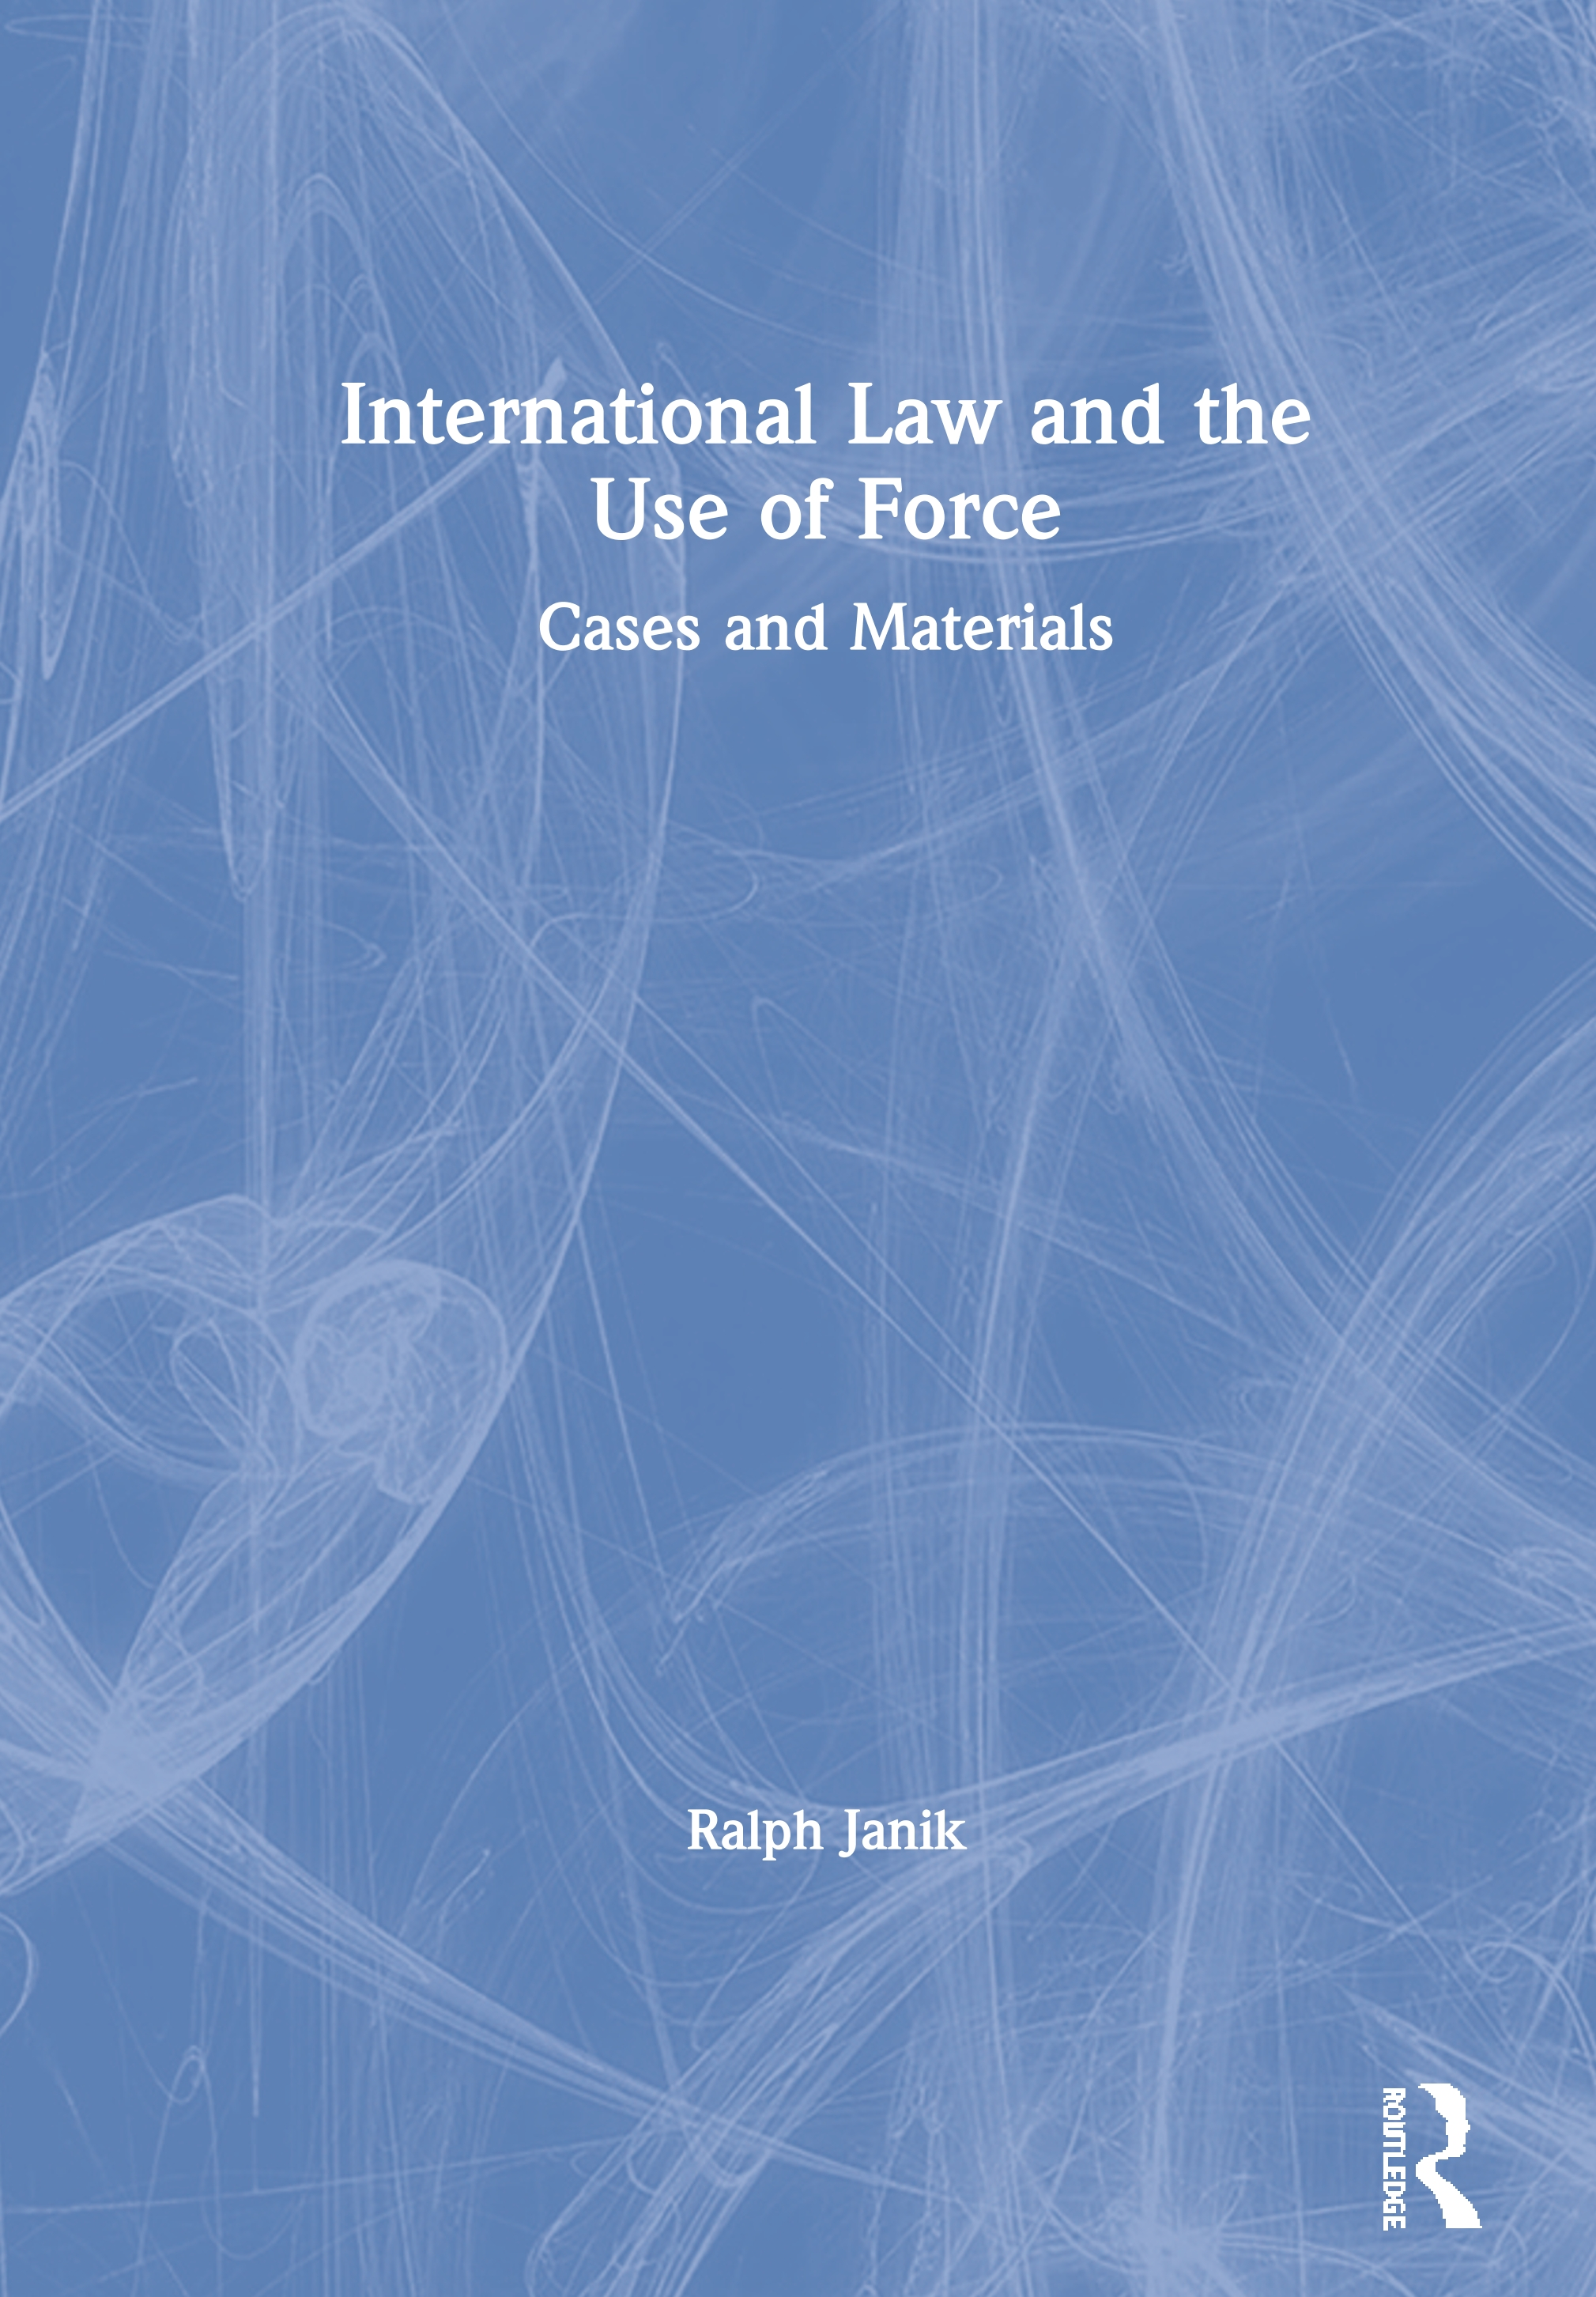 International Law and the Use of Force: Cases and Materials book cover